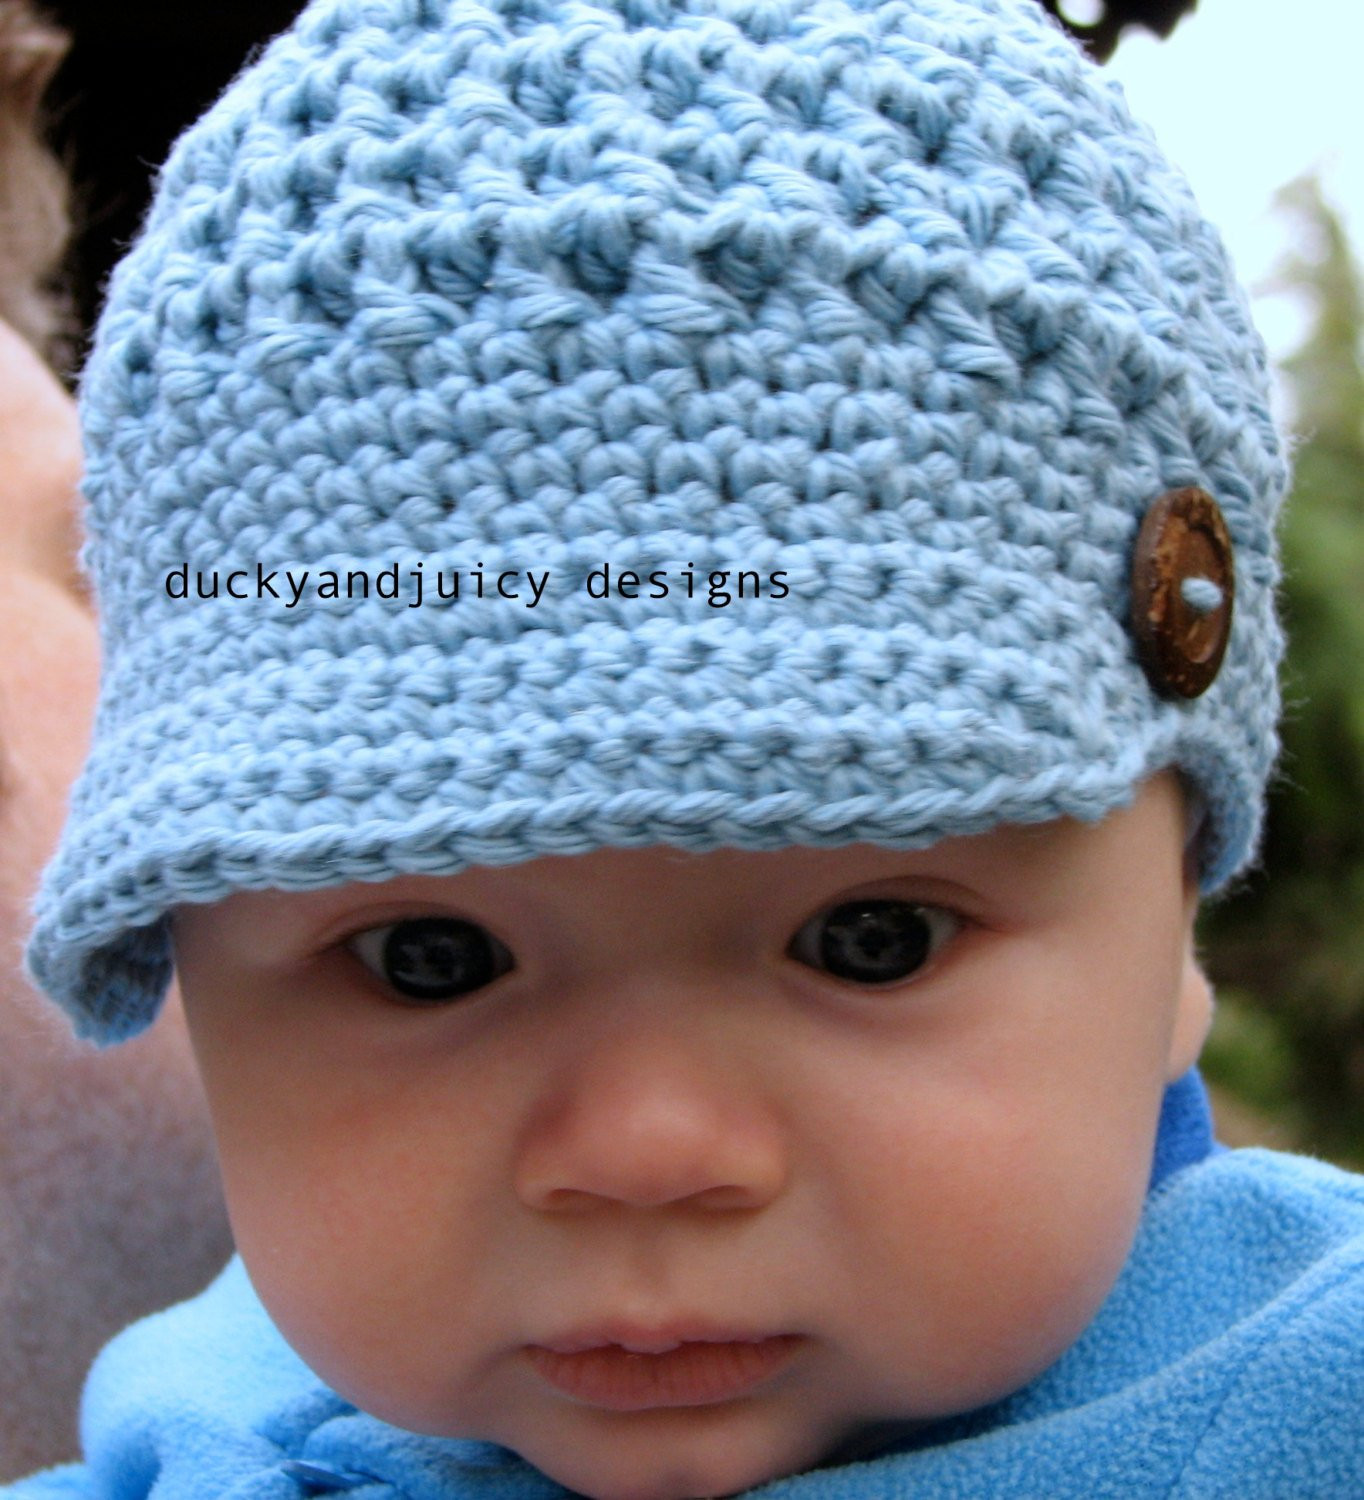 Awesome Baby Crochet Hat Baby Boy Hat Baby Girl Hat by Ducklyandjuicy Crochet Baby Boy Hats Of New 50 Ideas Crochet Baby Boy Hats